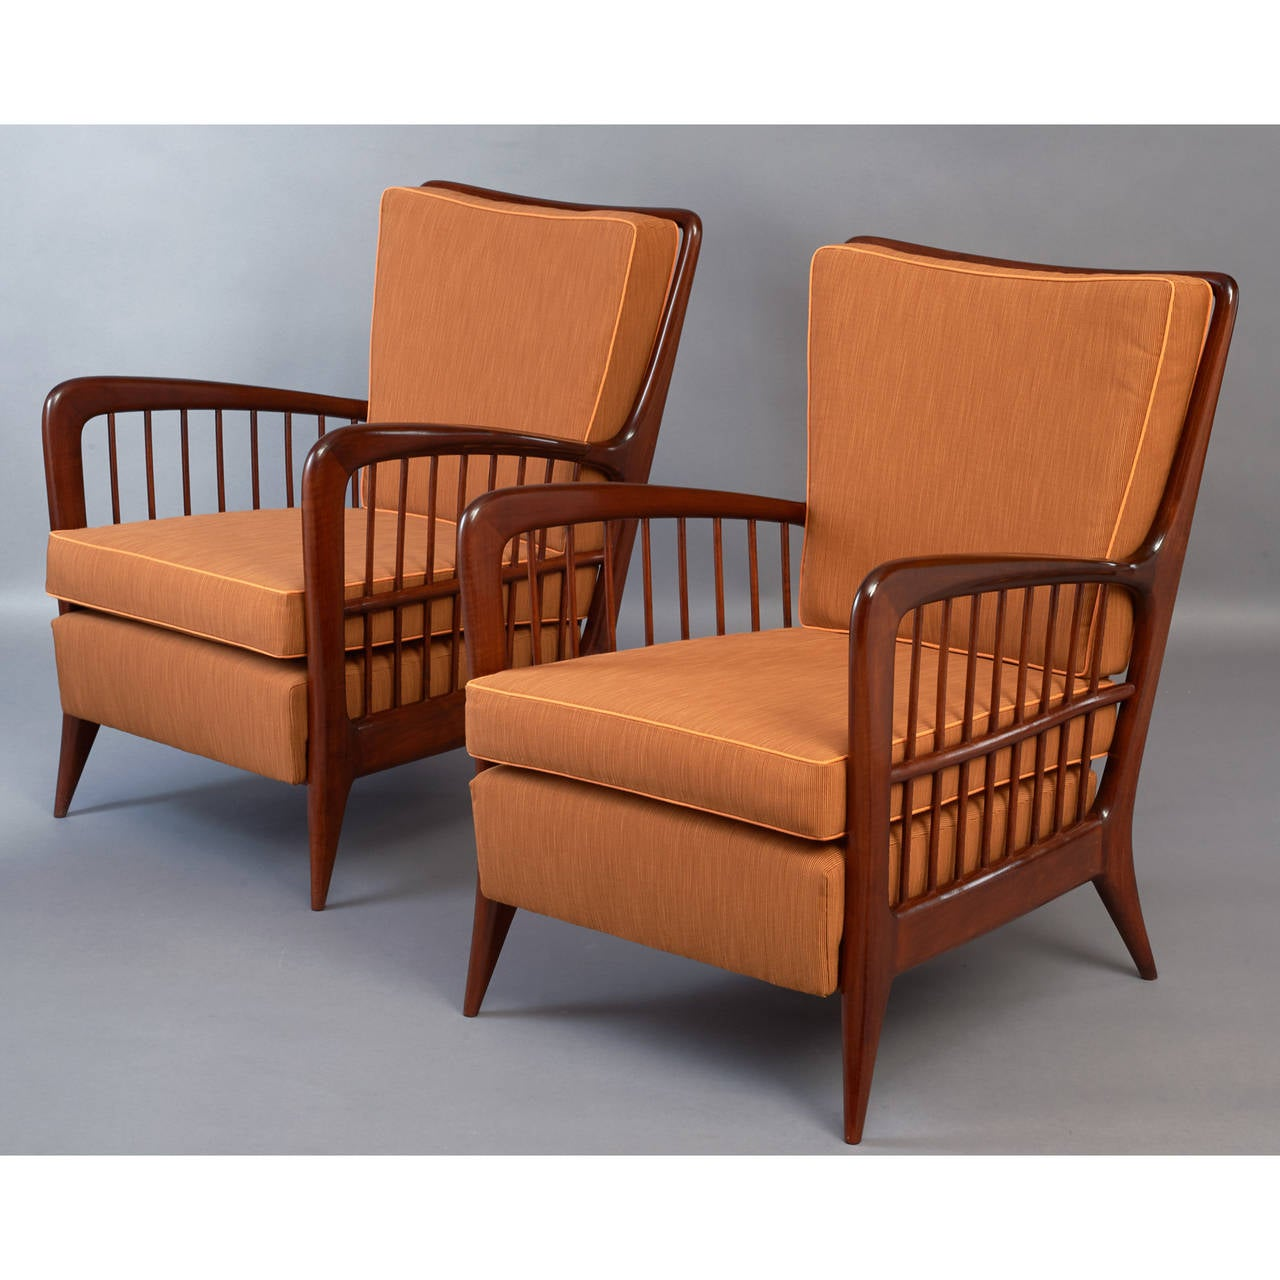 Paolo Buffa (1903-1970). Handsome pair of mahogany stained armchairs with spindled back and arms, sculpted armrests and tapered legs, Italy, circa 1940. Dimensions: 24 W x 27 D x 16 / 32 H.